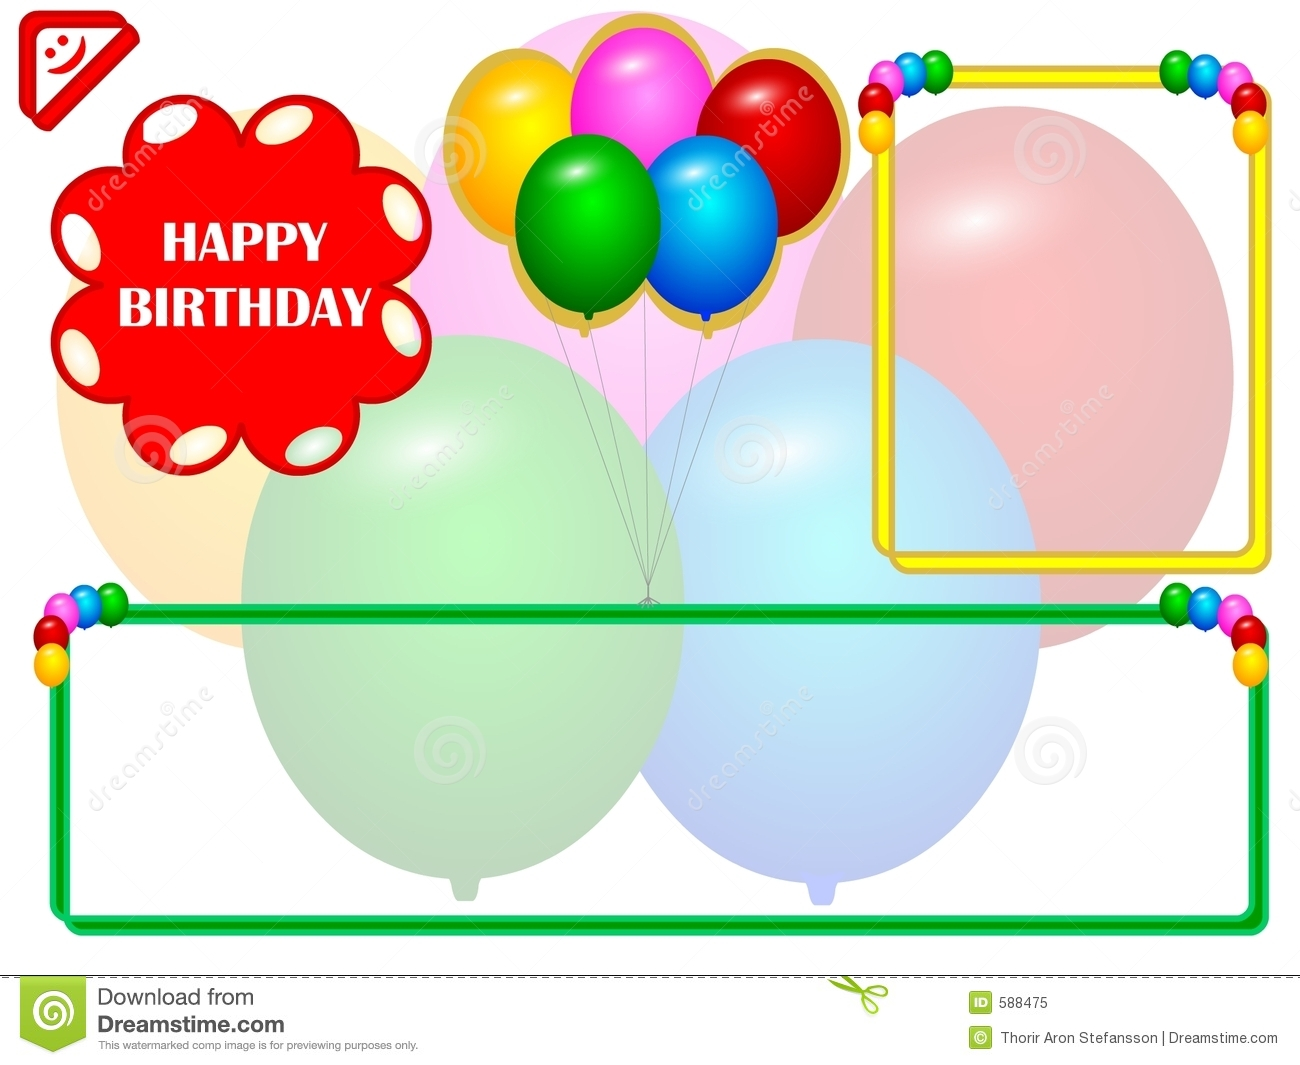 Birthday empty cards image collections birthday cake decoration ideas blank birthday cards birtday card stock illustration illustration of holiday 588475 birtday card searchgroupfo bookmarktalkfo Choice Image